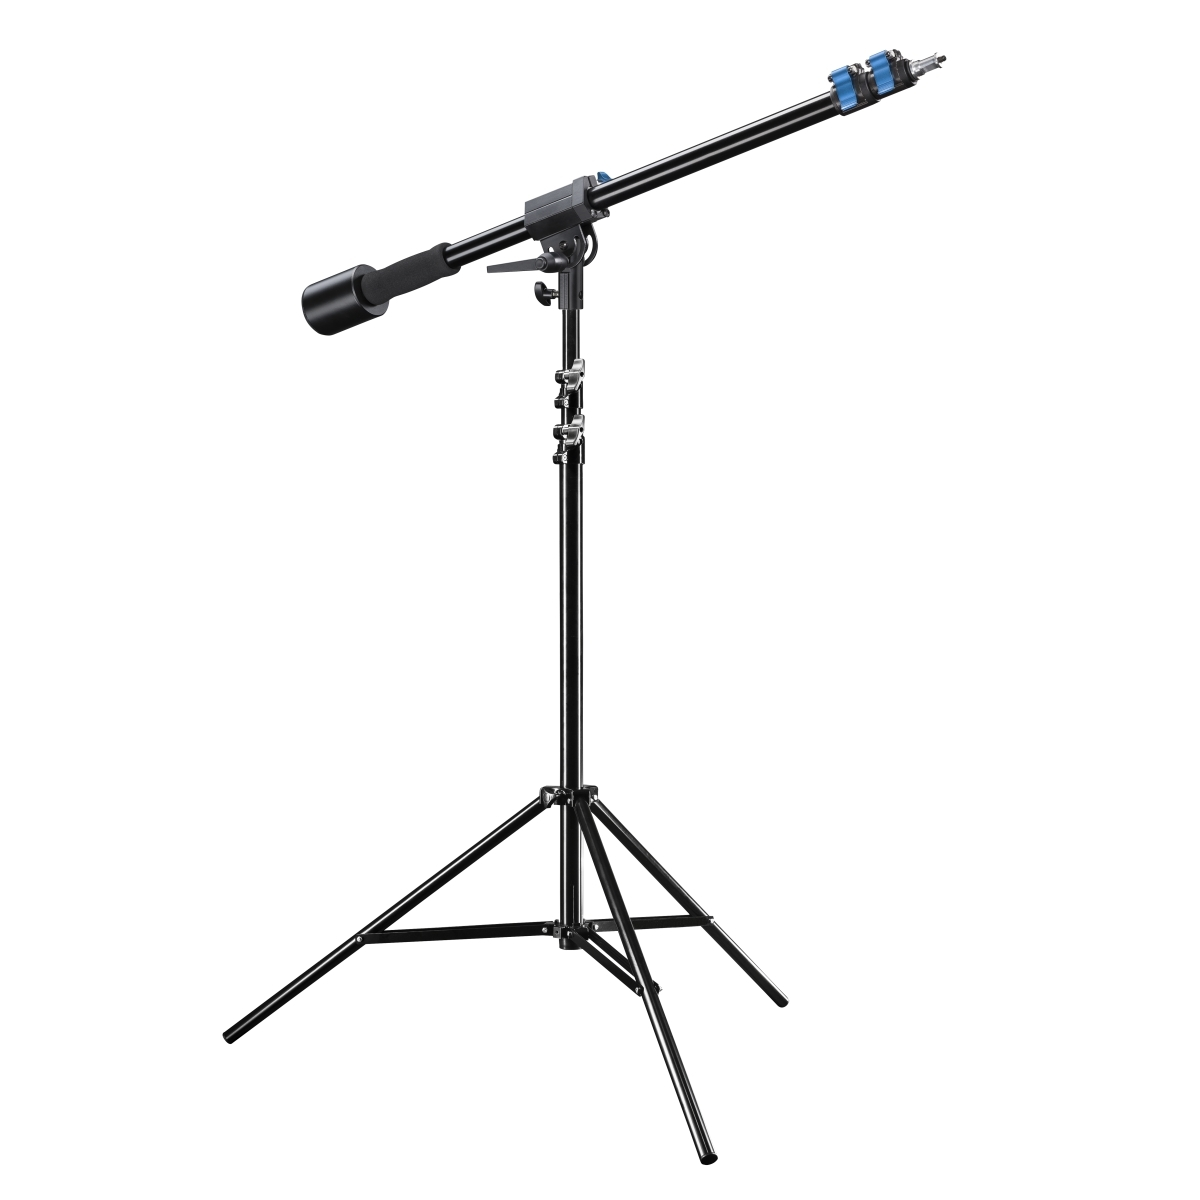 Walimex pro boom stand + weight 115-400cm